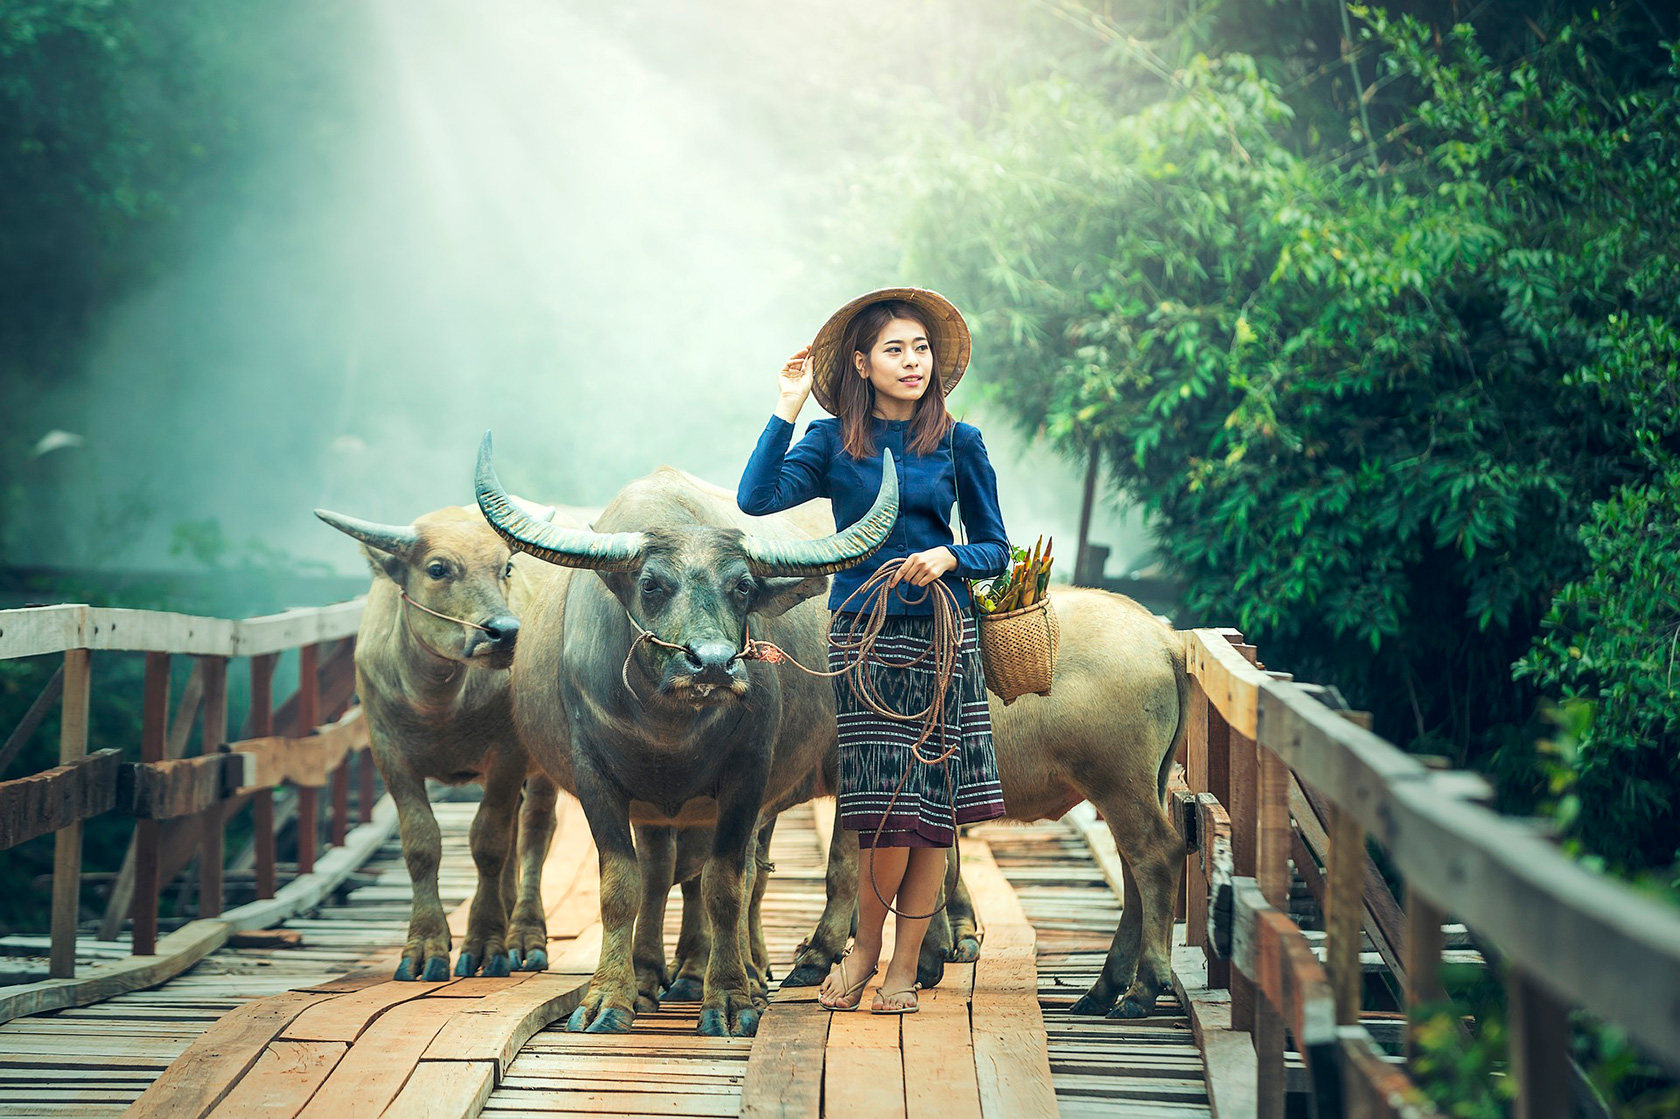 Xiapu, the girl with the bulls, China